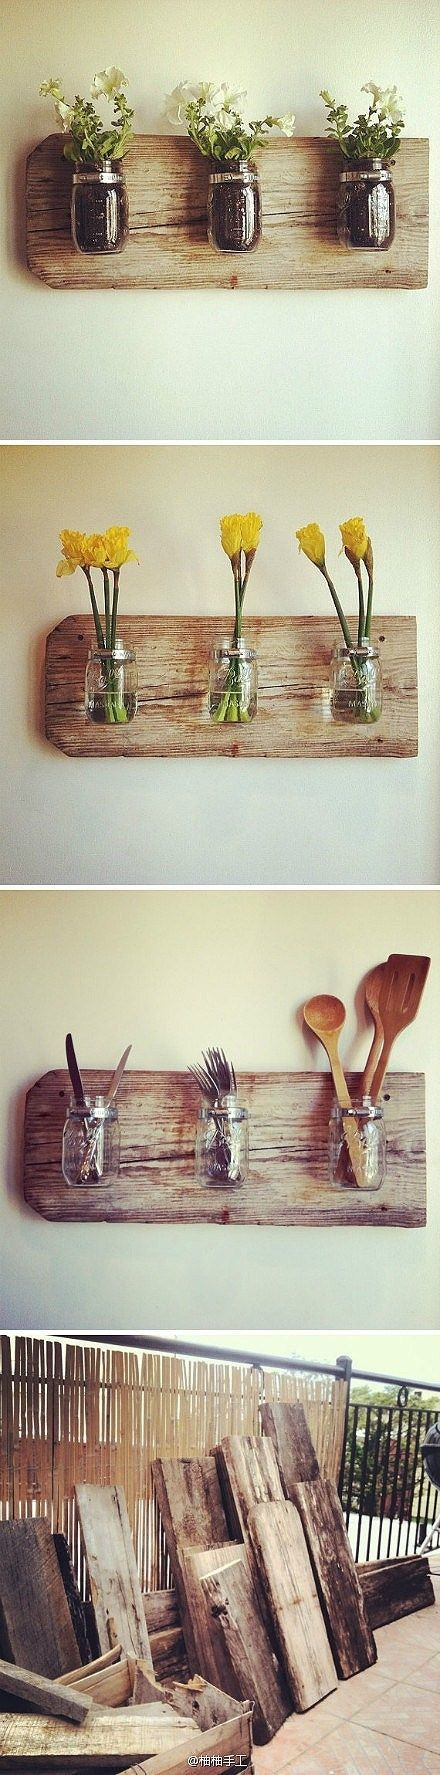 Could always do this for silverware if we can't find a furniture piece...DIY Home Decor with Mason Jars and Reclaimed Wood: